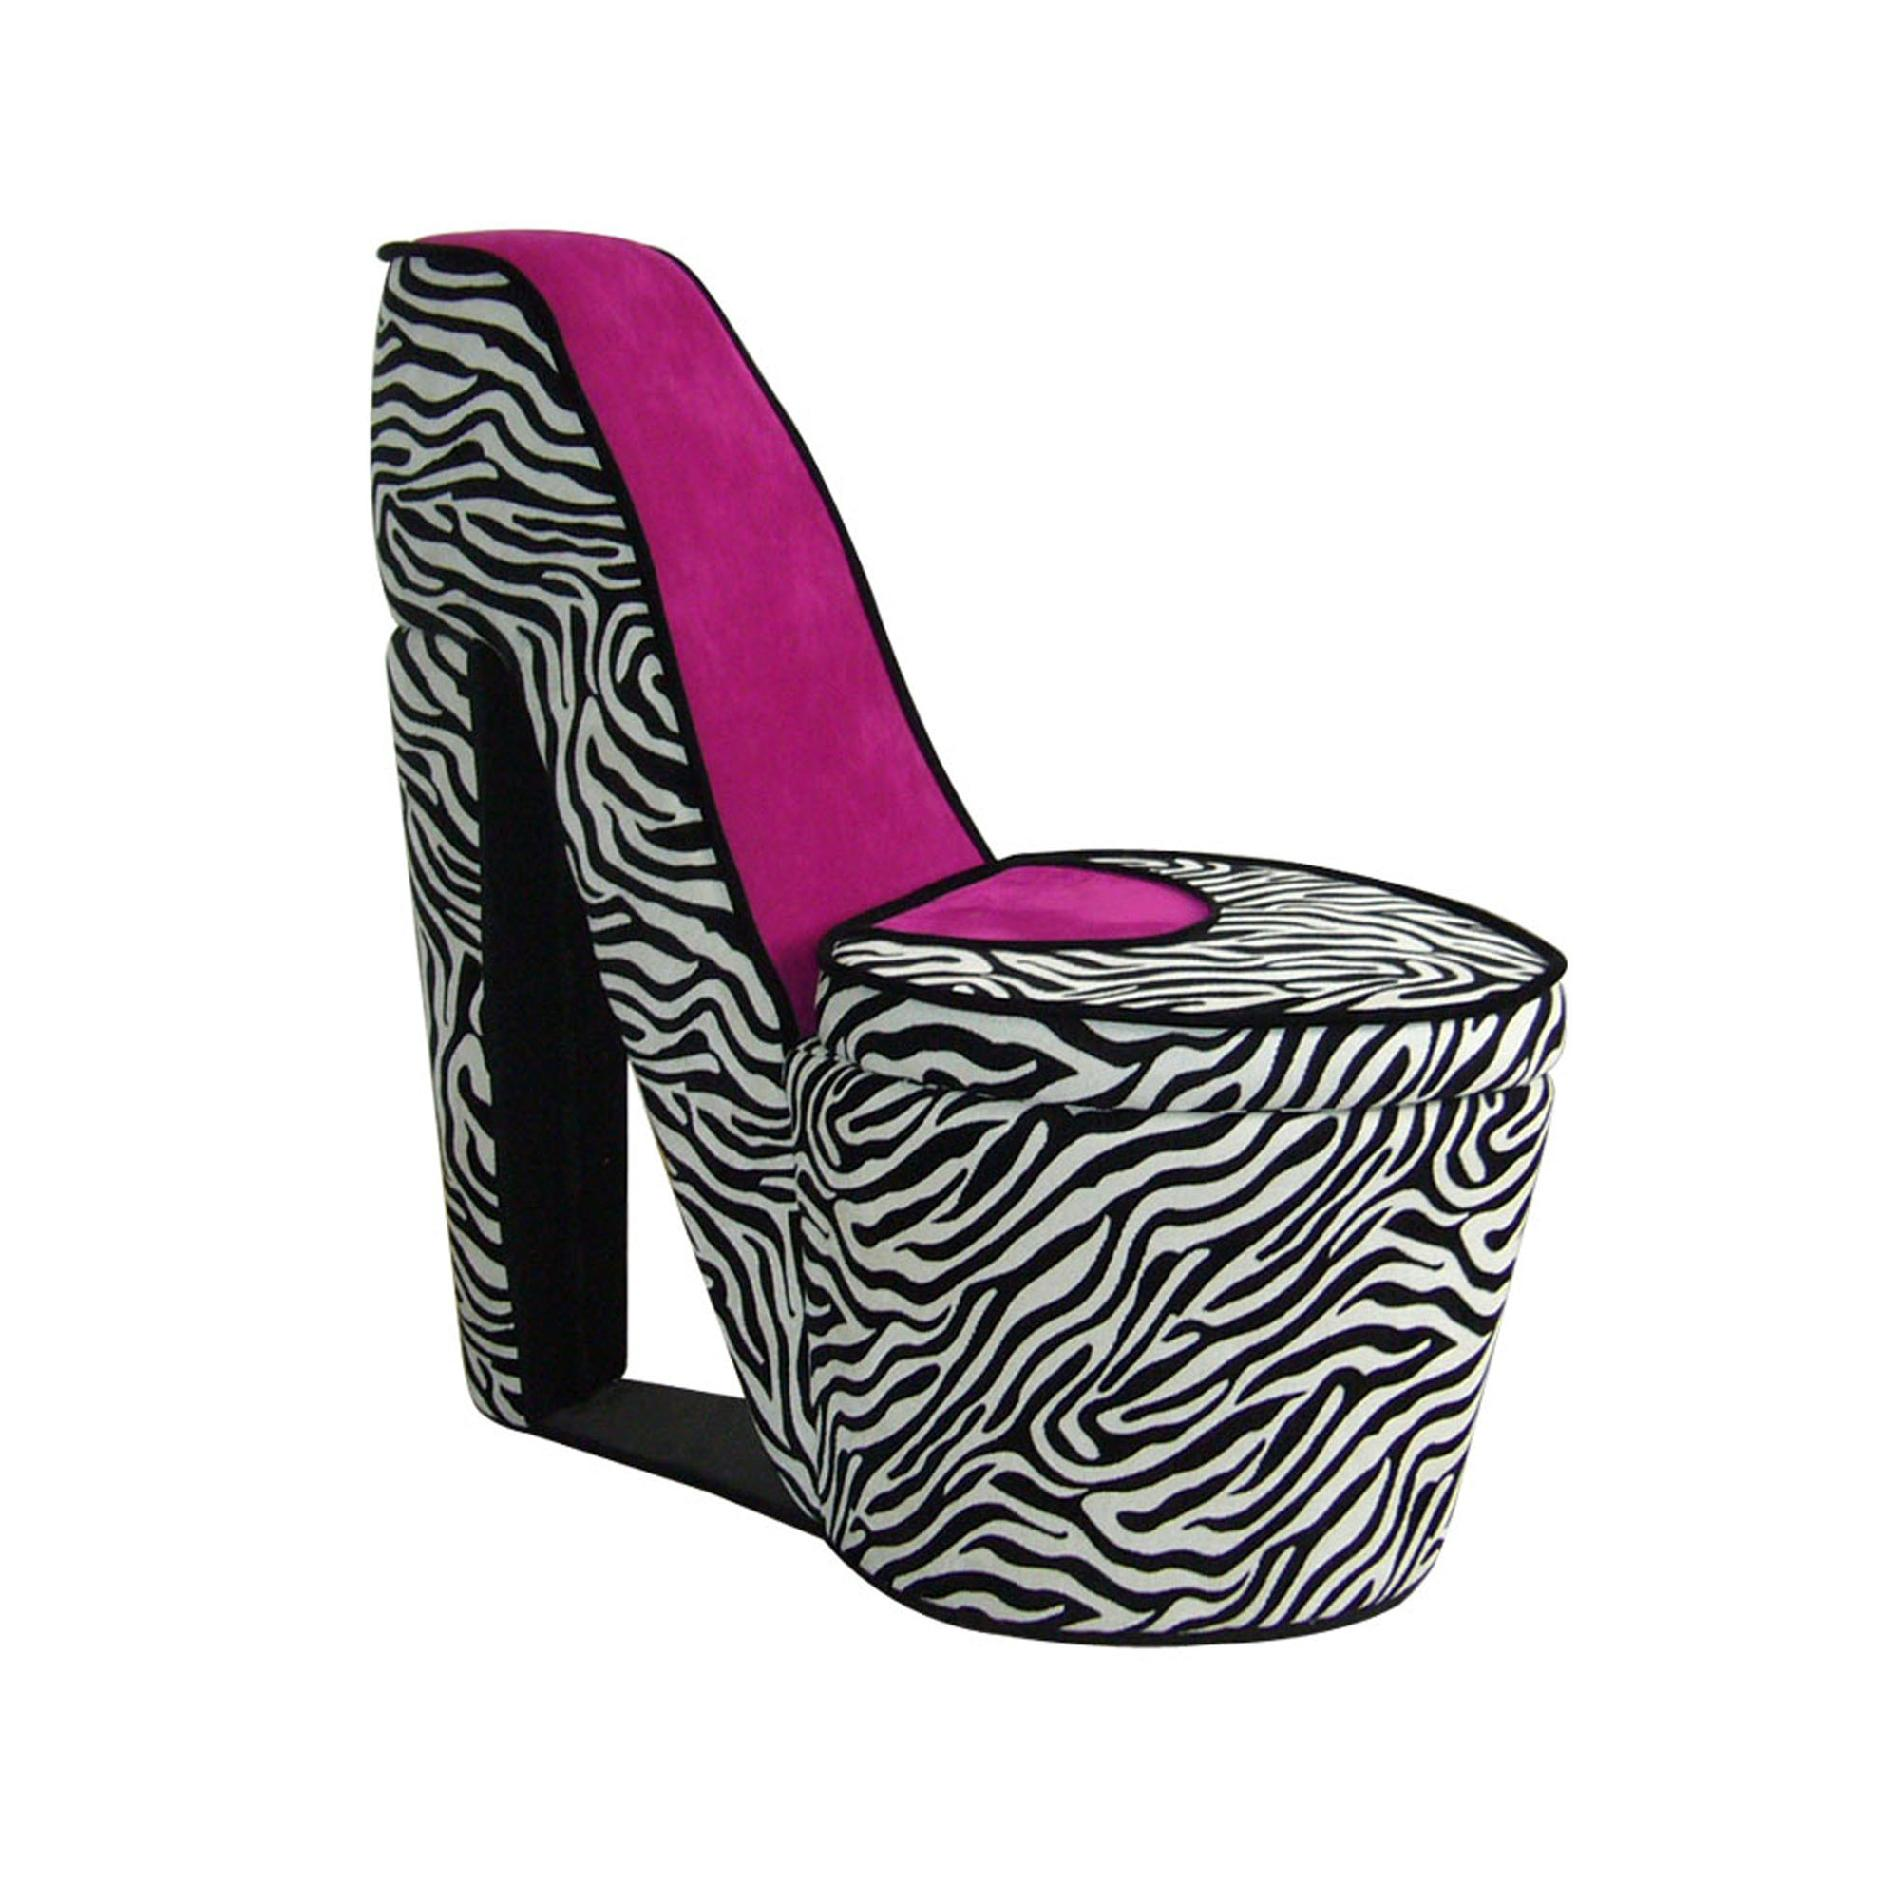 high heel chair cheap jenny lind white pink zebra heels is